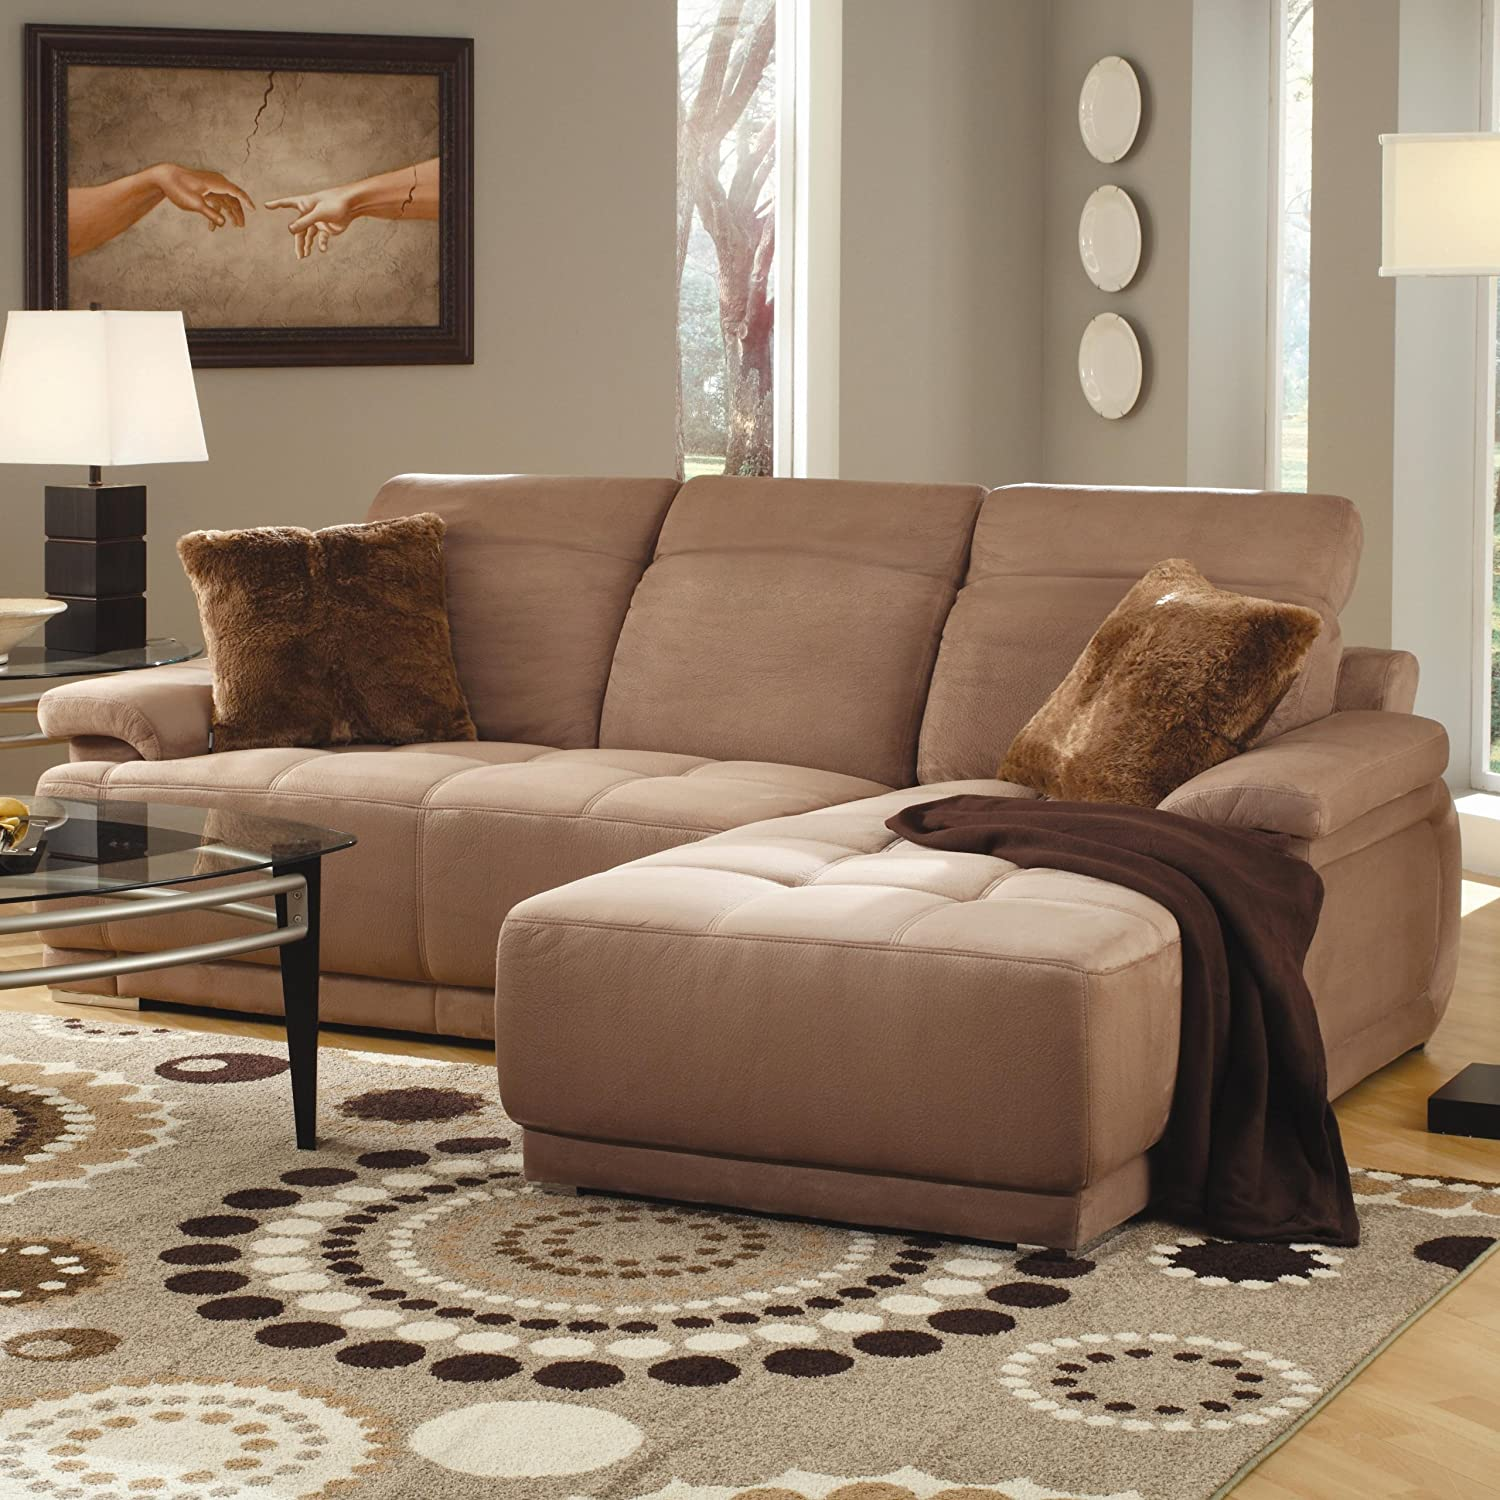 Klara Adjustable Headrest Sectional in a Soft Tan Microfiber by Generations